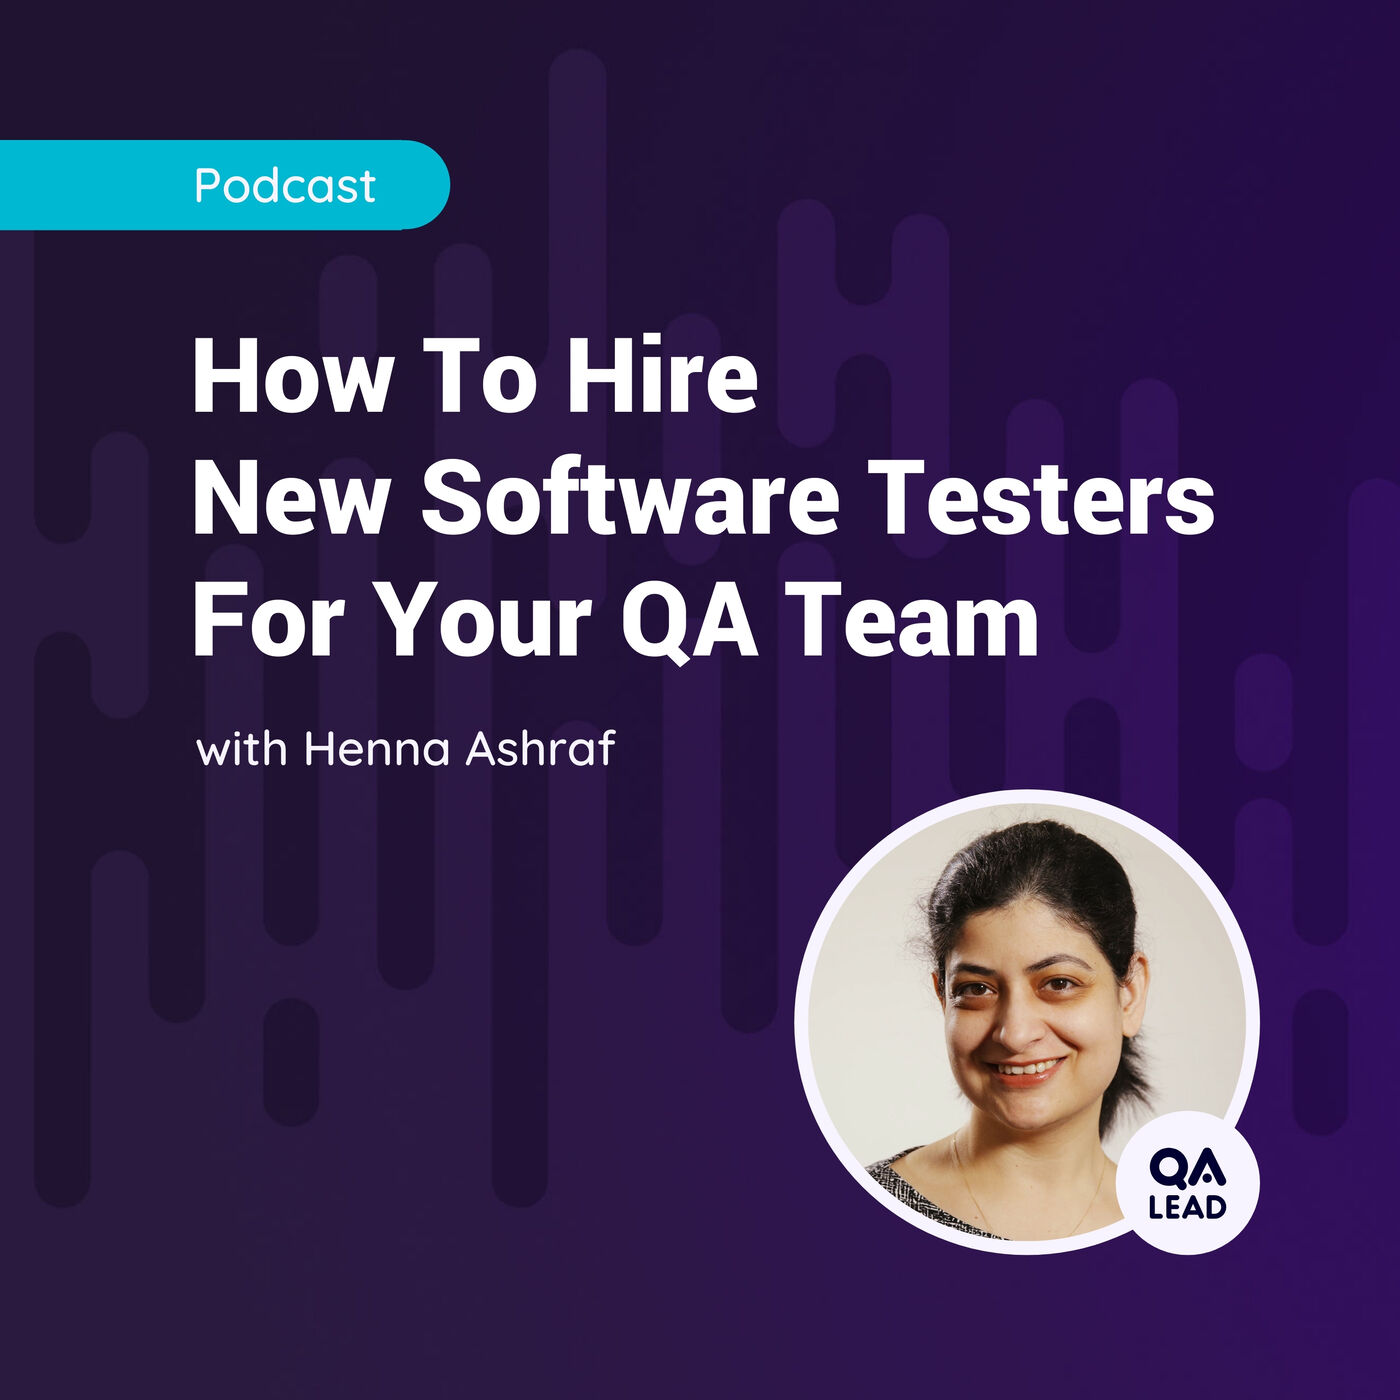 How to Hire New Software Testers For Your QA Team (with Henna Ashraf from Cashplus)